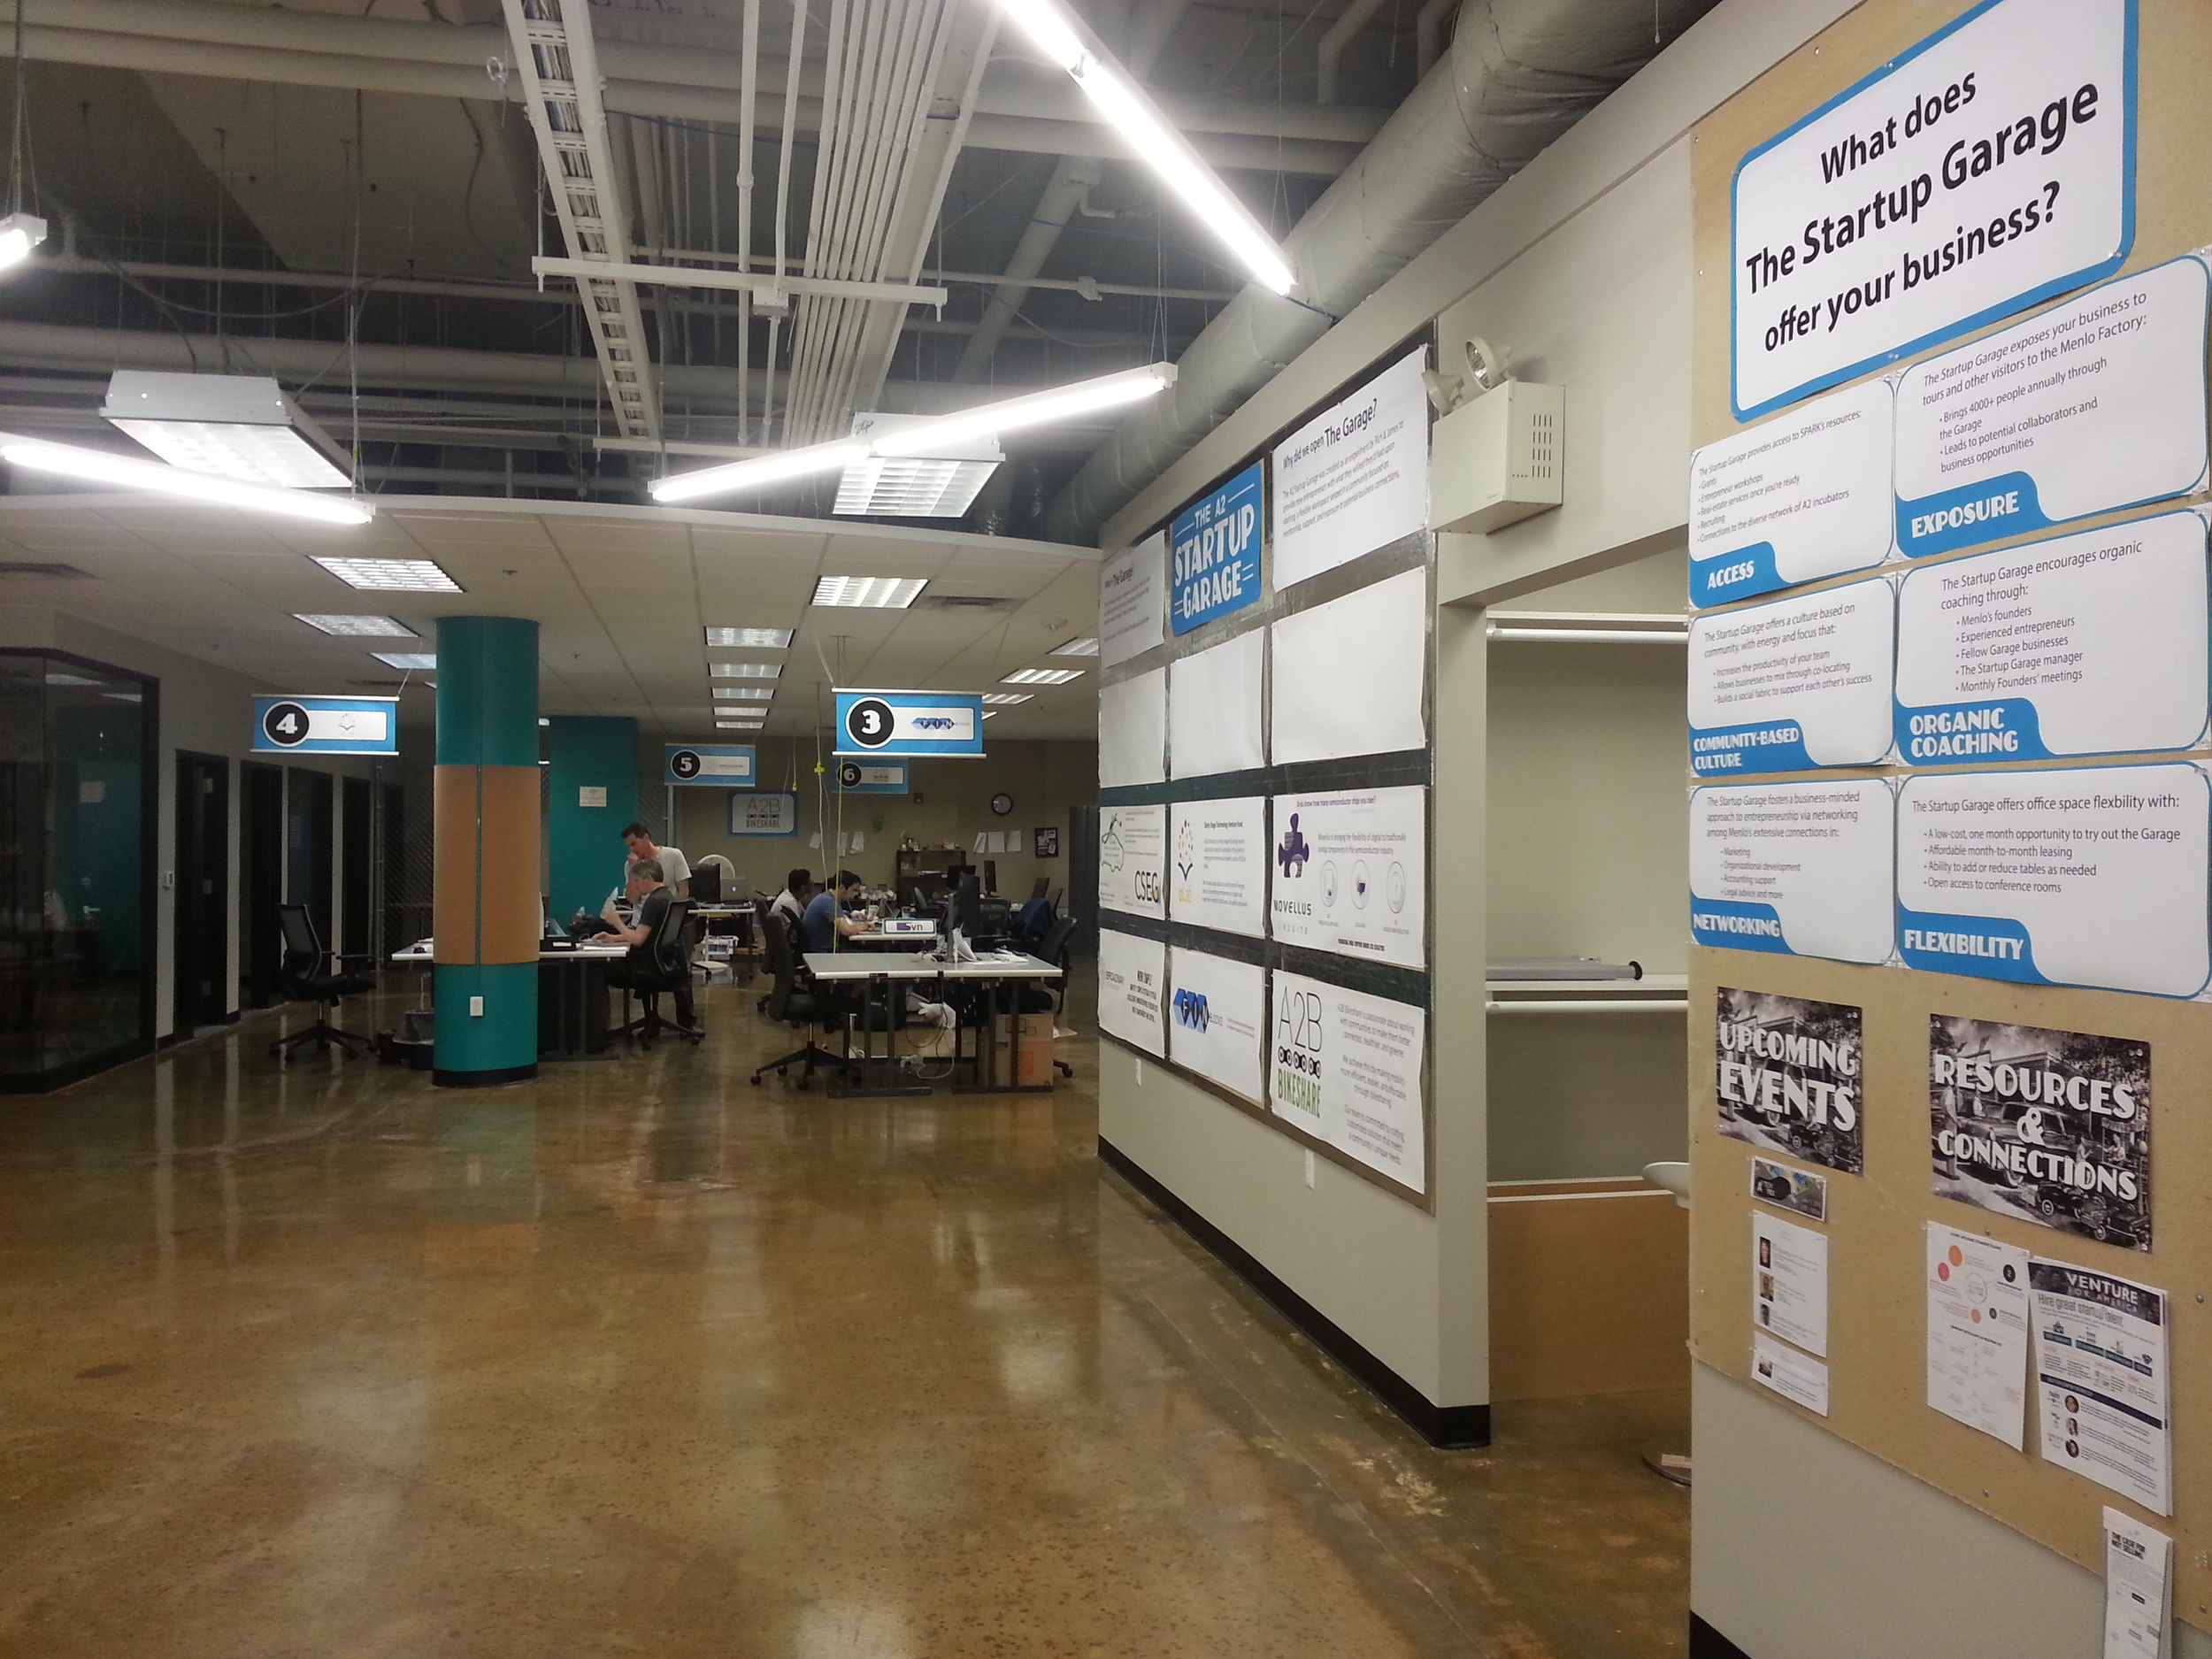 A promotional wall, visible from Menlo Innovations' large classroom space, features a panel for each startup with their logo and central focus